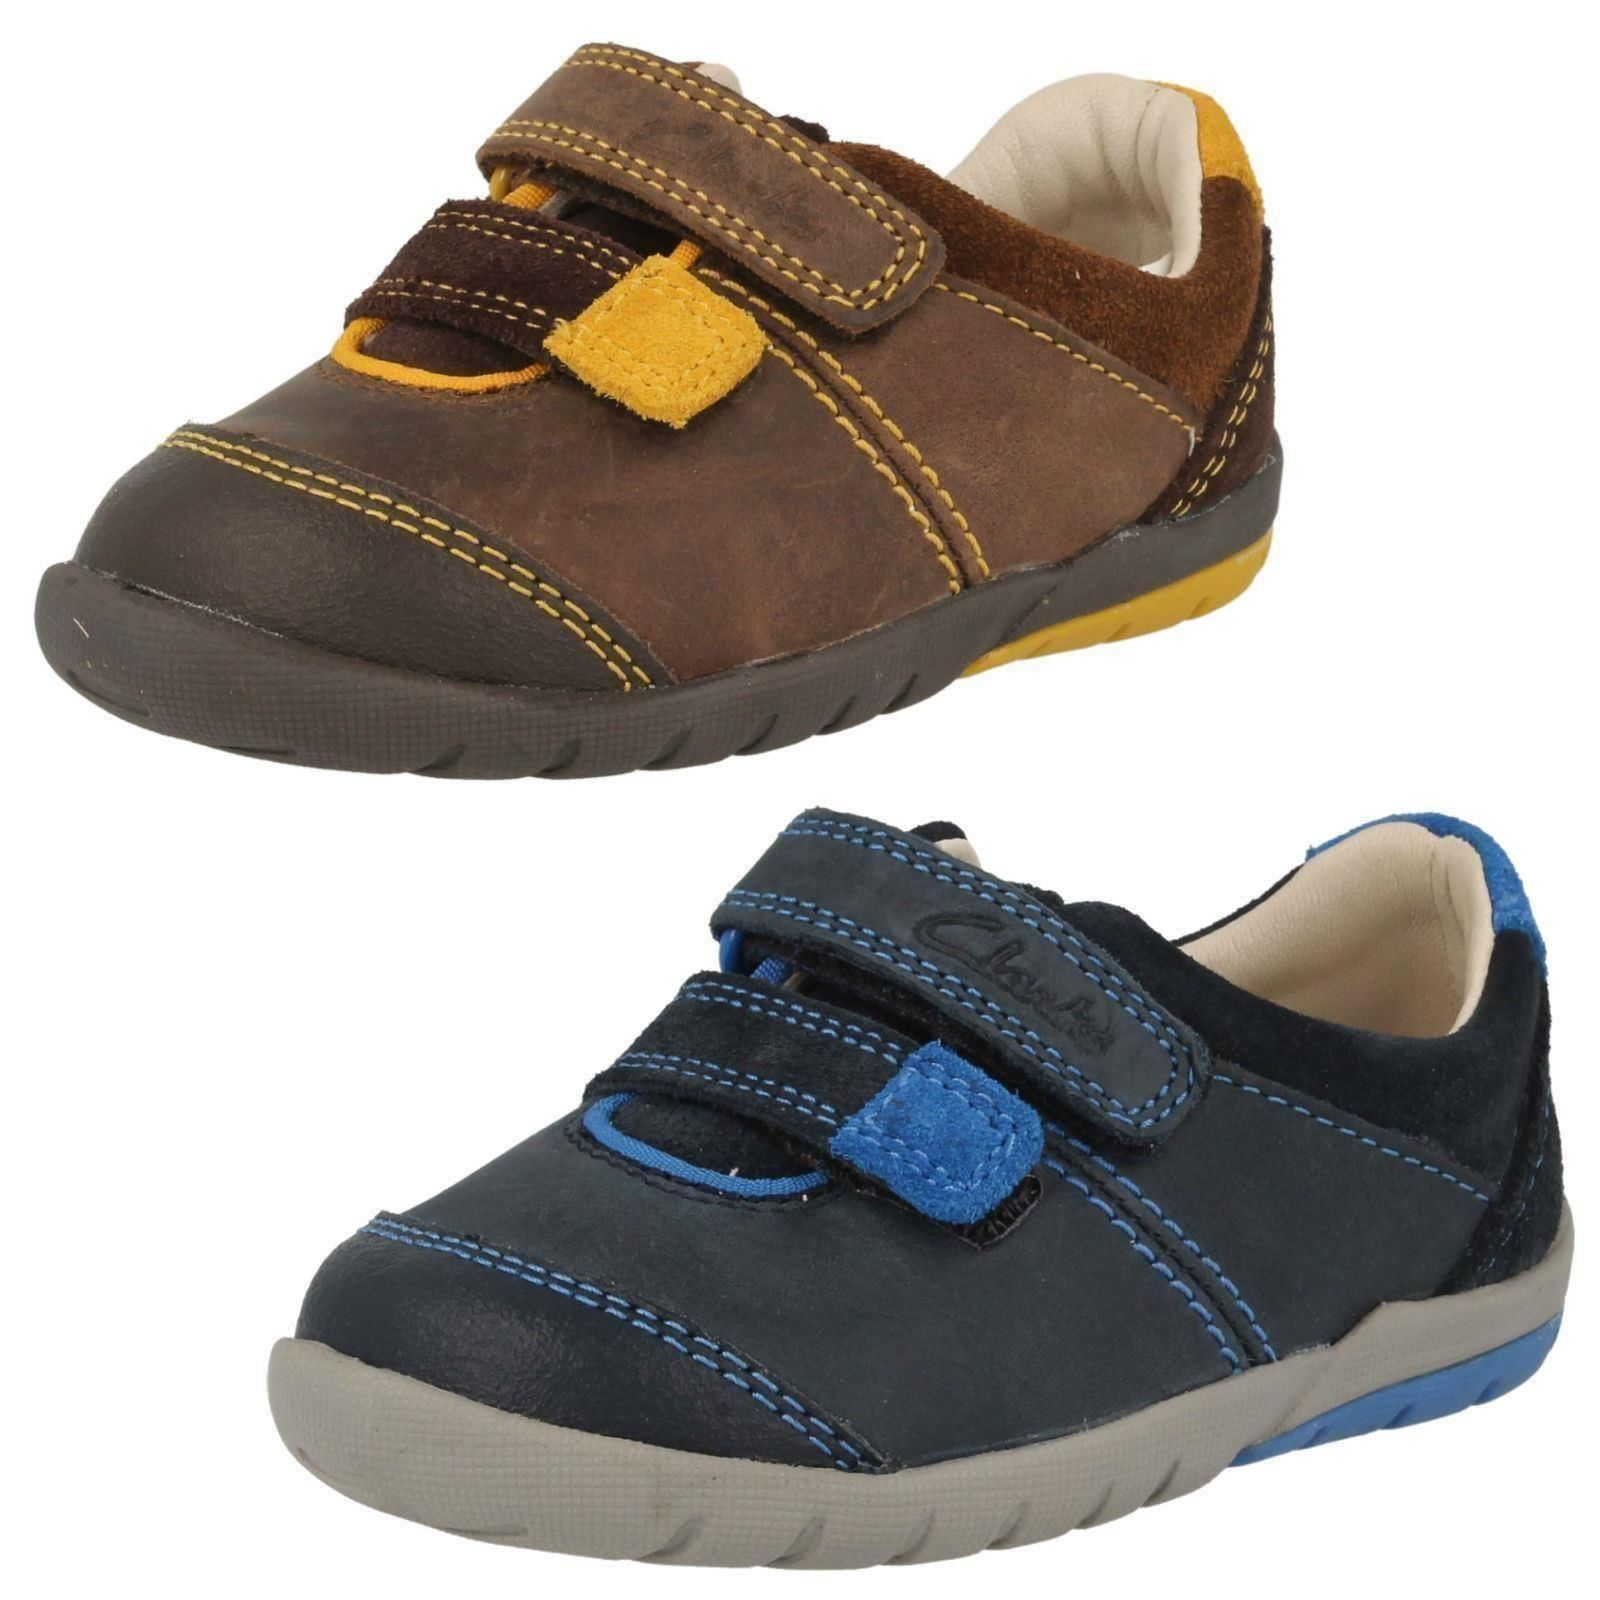 SALE CLARKS BOYS FIRST SHOES /'SOFTLY LO/' GREY